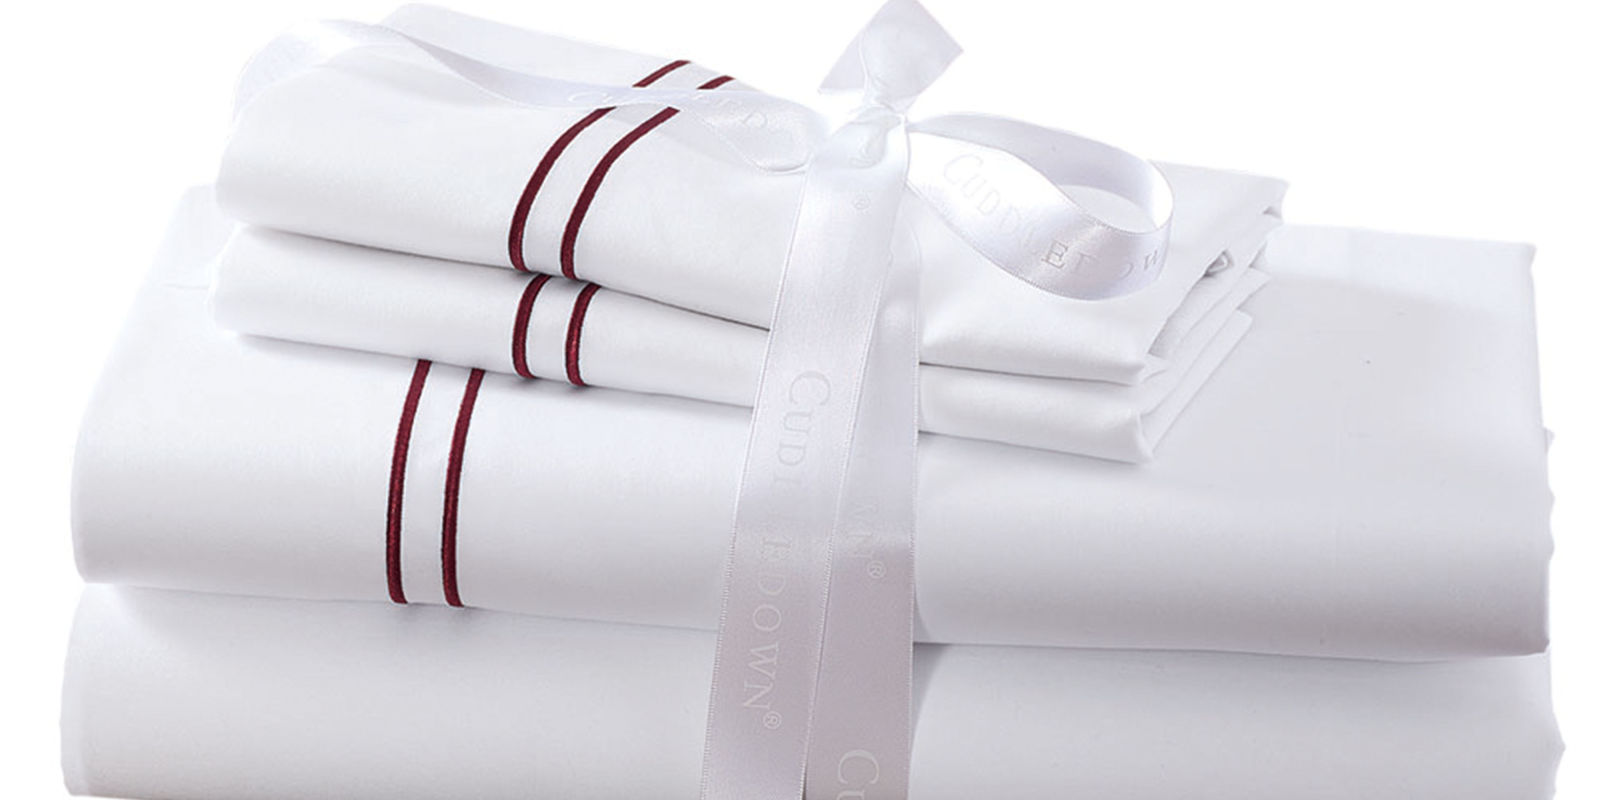 High thread count bed sheets - January 2016 Sheets Cuddledown Hotel 400 Thread Count